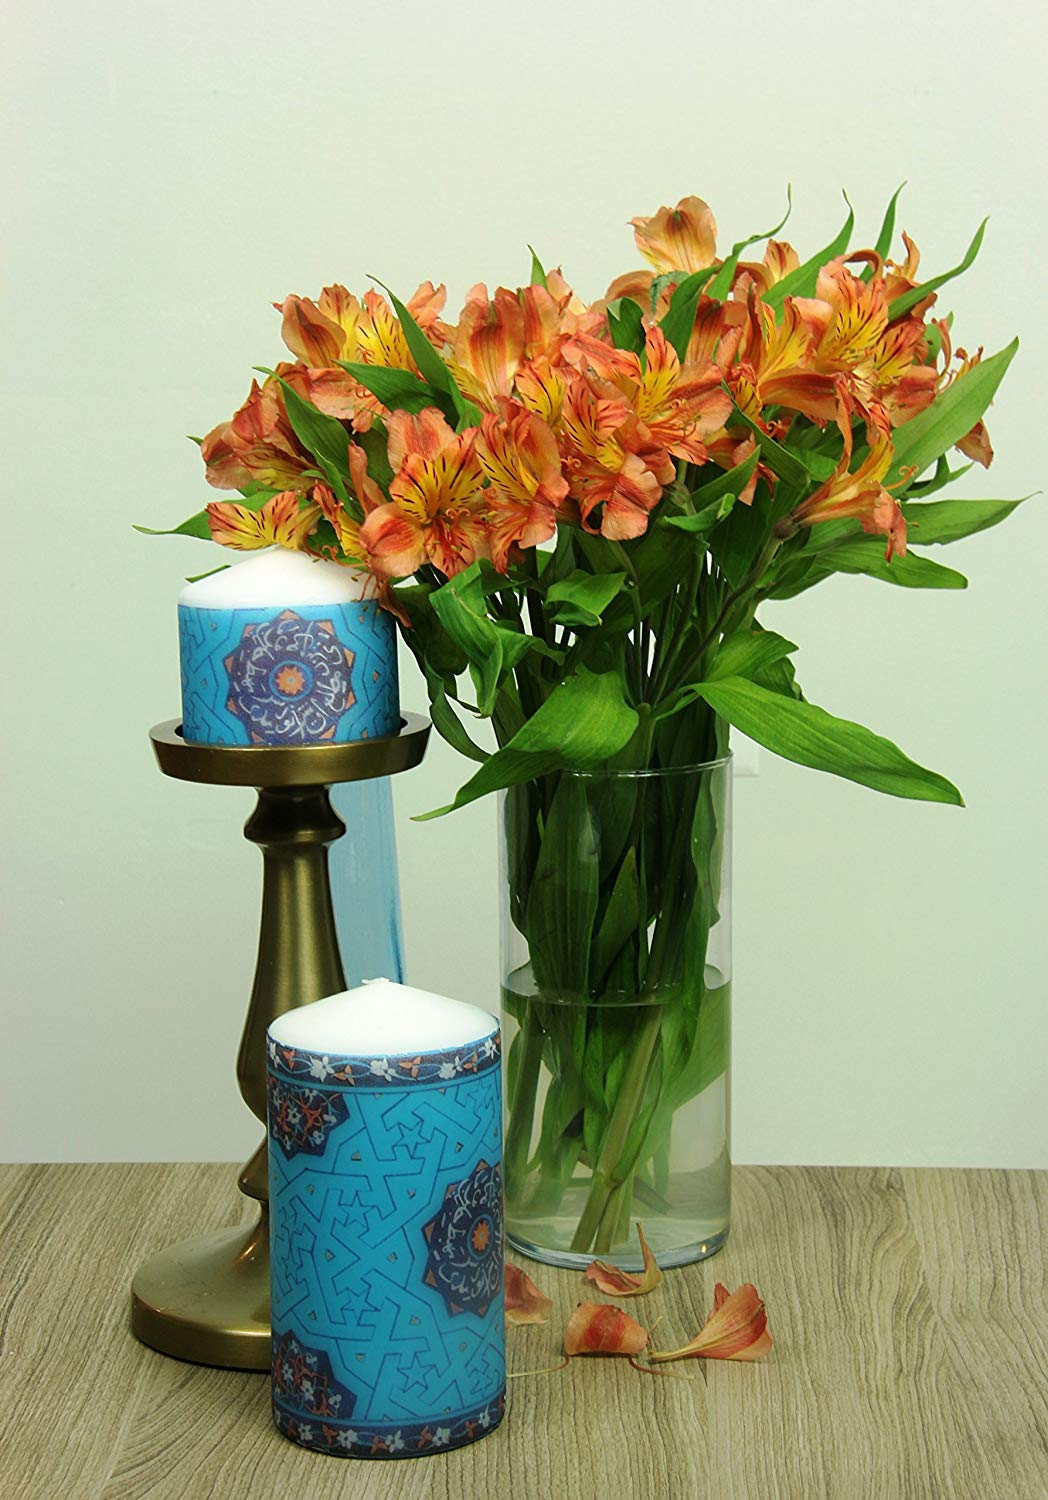 """Pillar Candles, hand decoupage-decorated with Traditional Geometric/Eslimi Patterns - Thickness: 2.25"""" to 3"""" - Height: 3"""" 4"""" 5"""" 6"""" & 7"""" tall"""